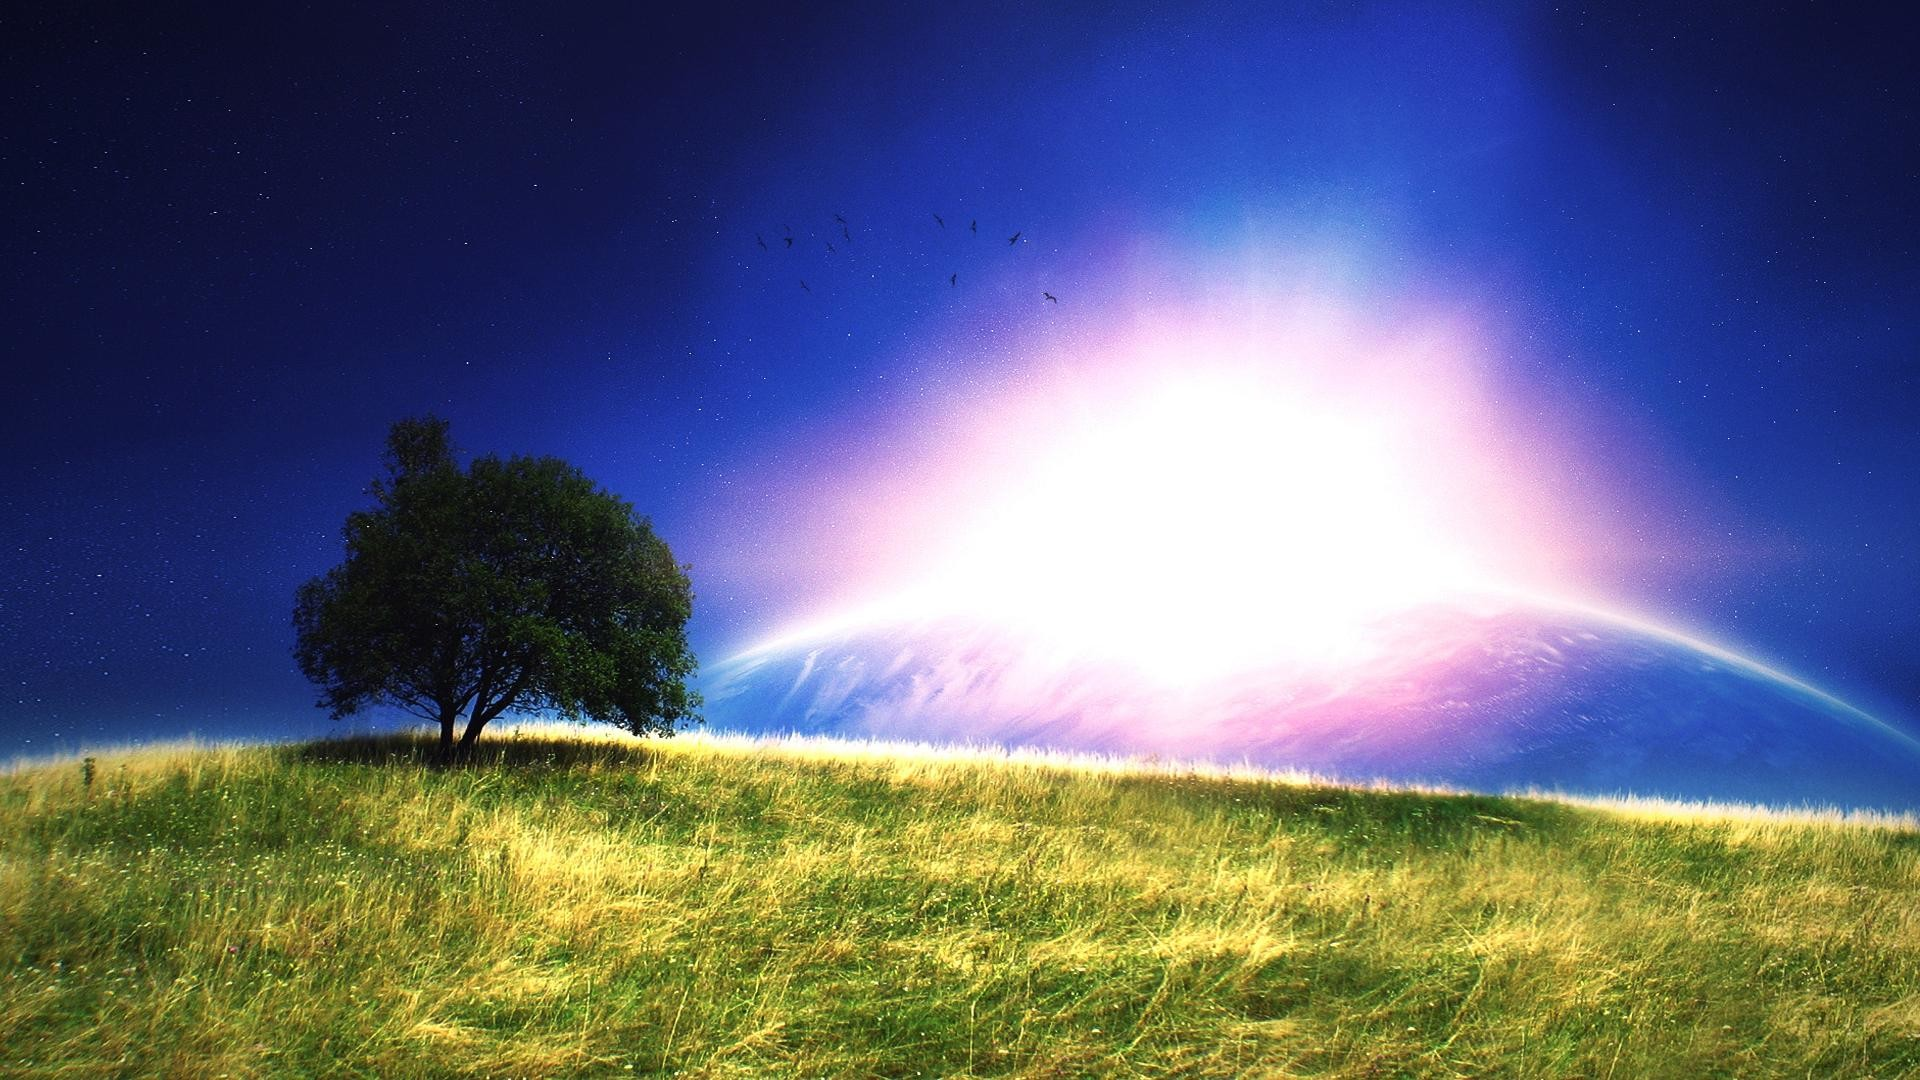 fantasy grass and trees scenery background wide  wallpapers:1280×800,1440×900,1680×1050 –